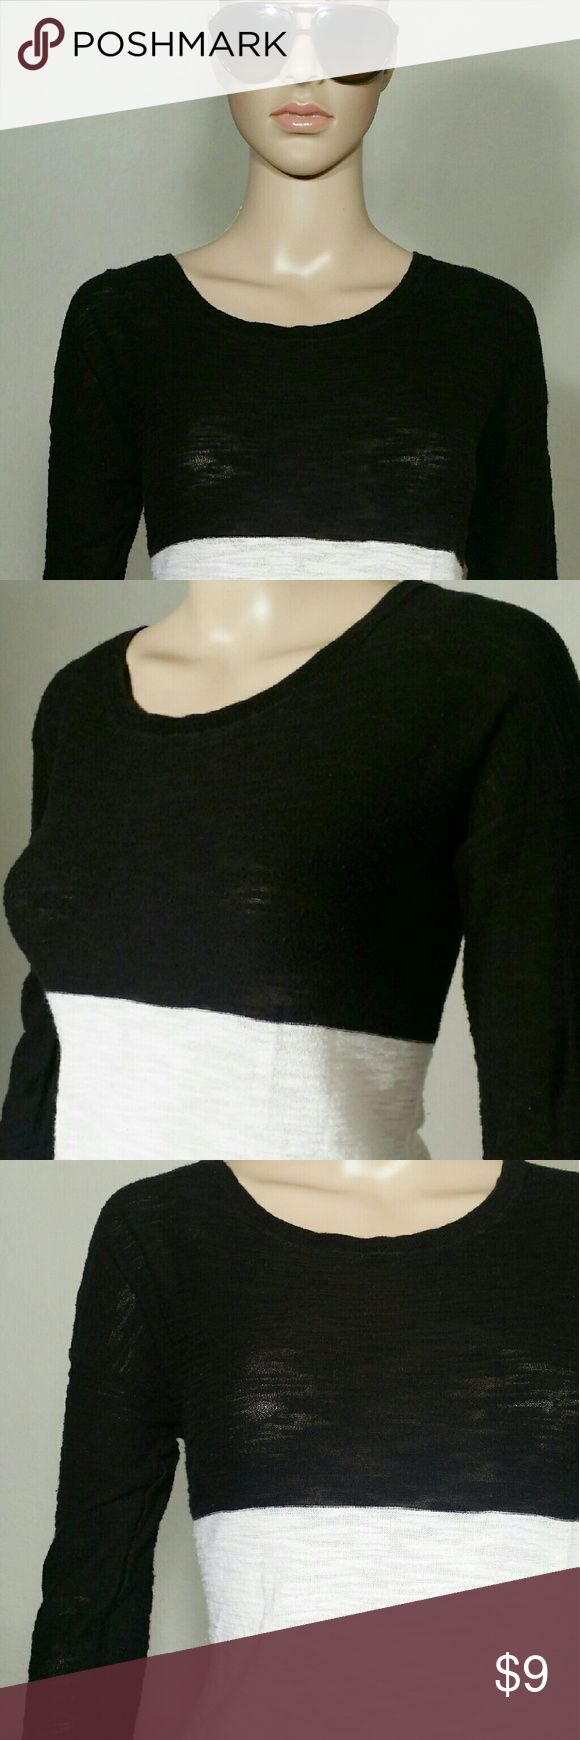 Express Womens Black Long Sleeve Shirt Size SP SMALL PETITE 66% Cotton 36% Rayon In Very good condition!! Very adorable!! A great gift!! Fast shipping!! Express Tops Tees - Long Sleeve